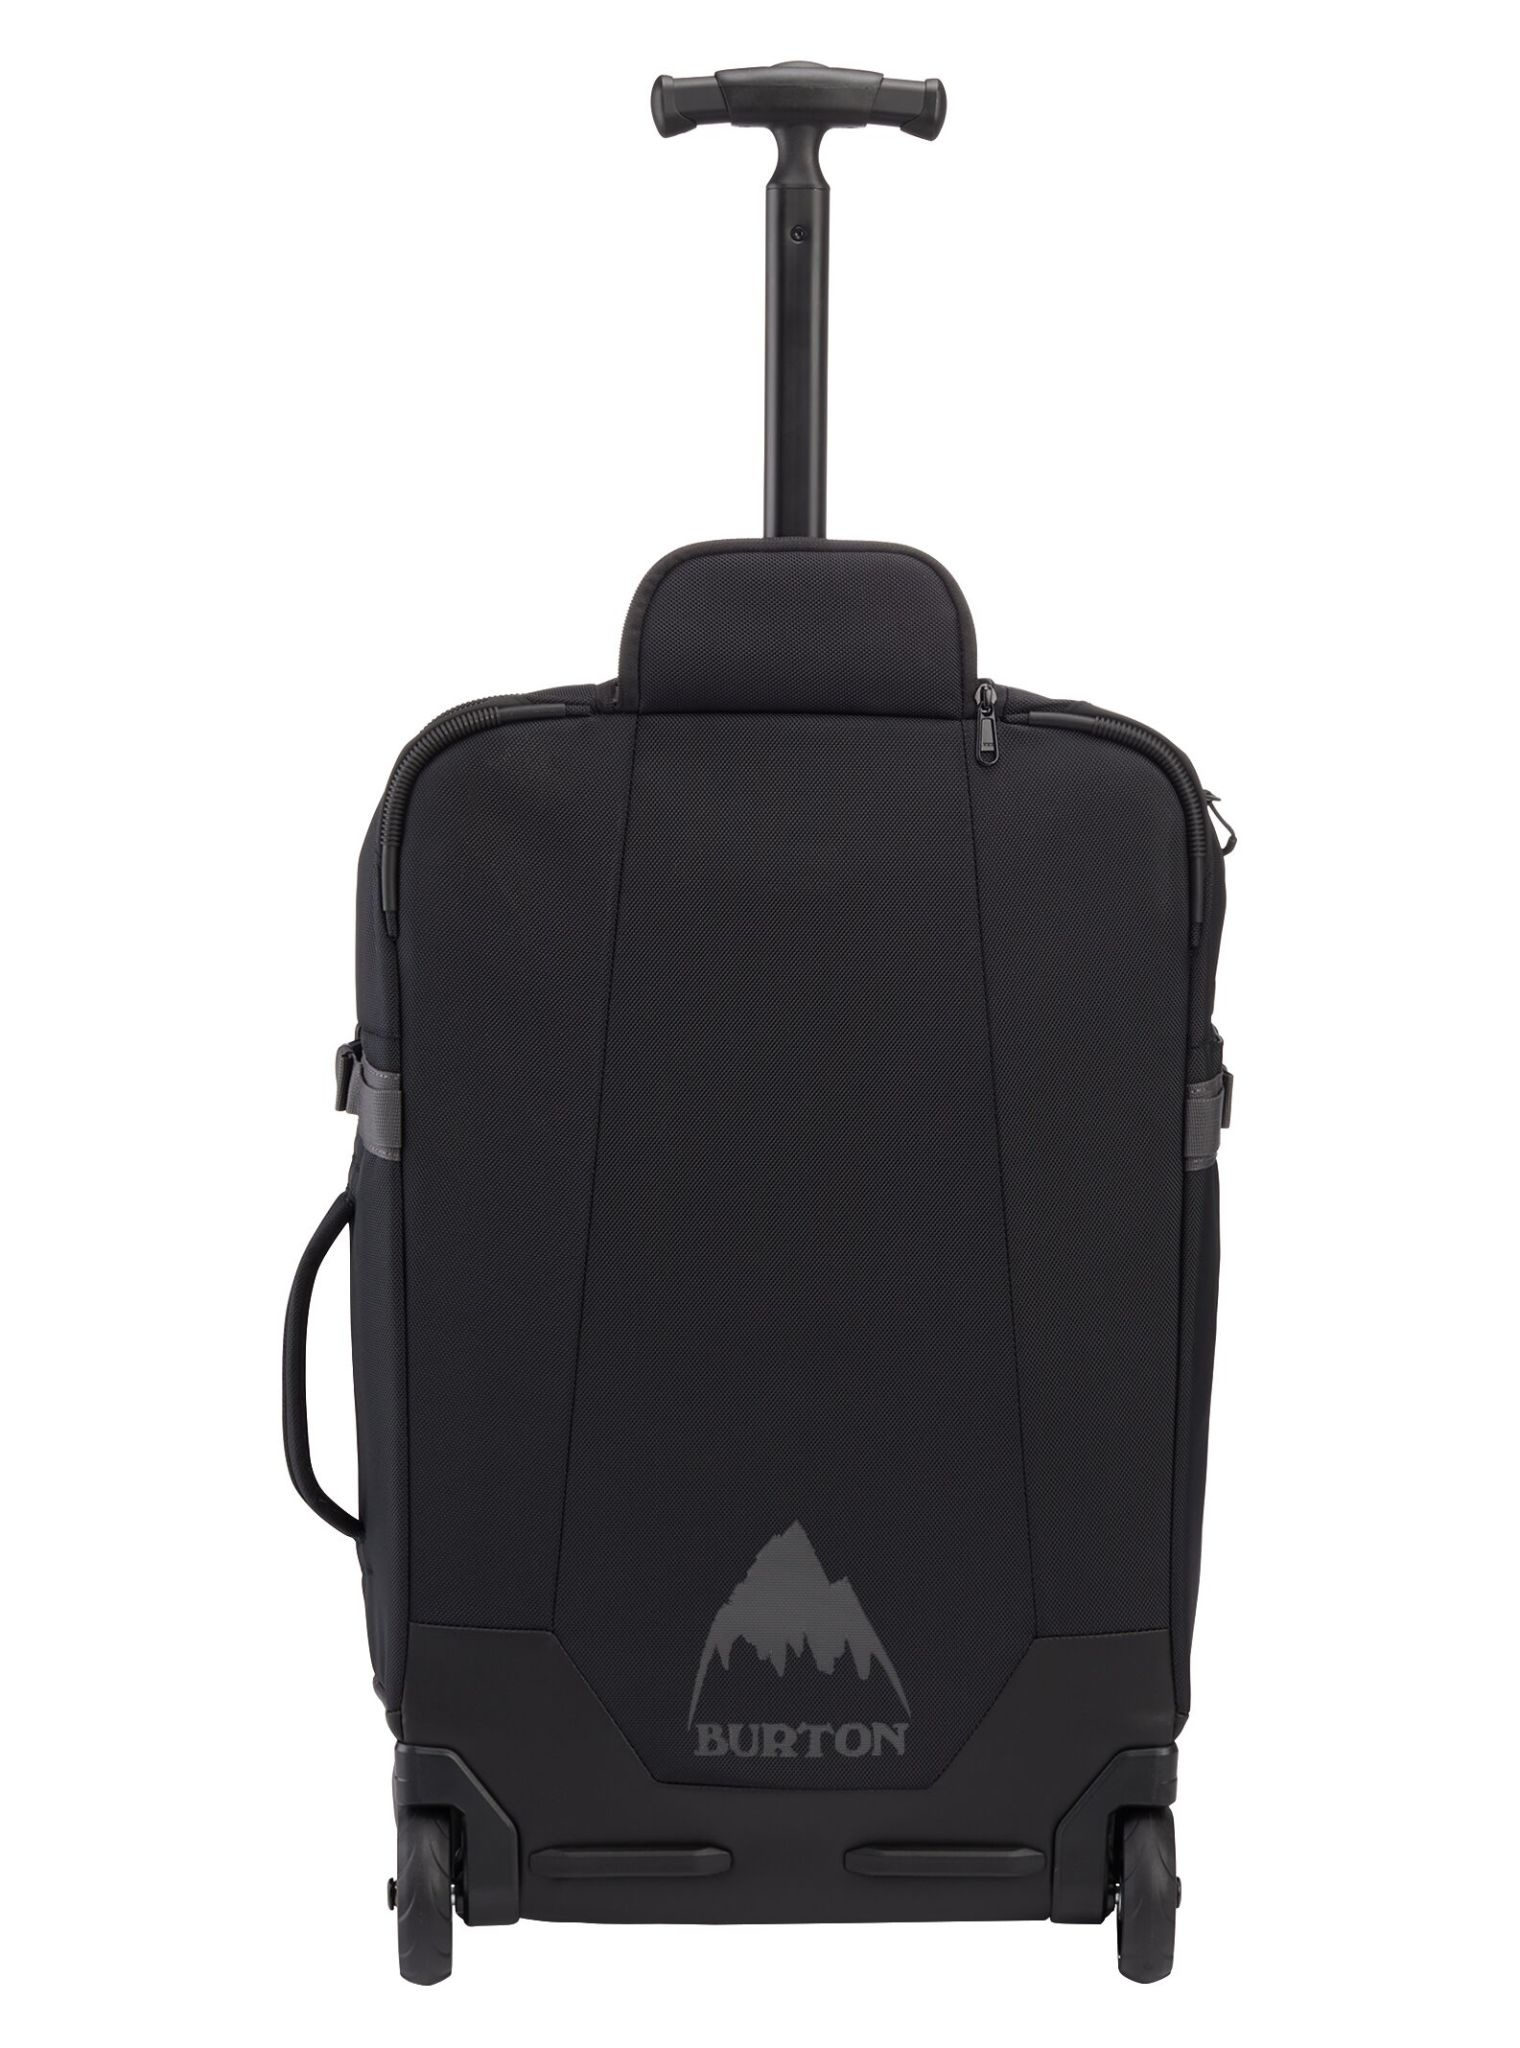 Burton Burton Multipath 40L Carry-On Travel Bag